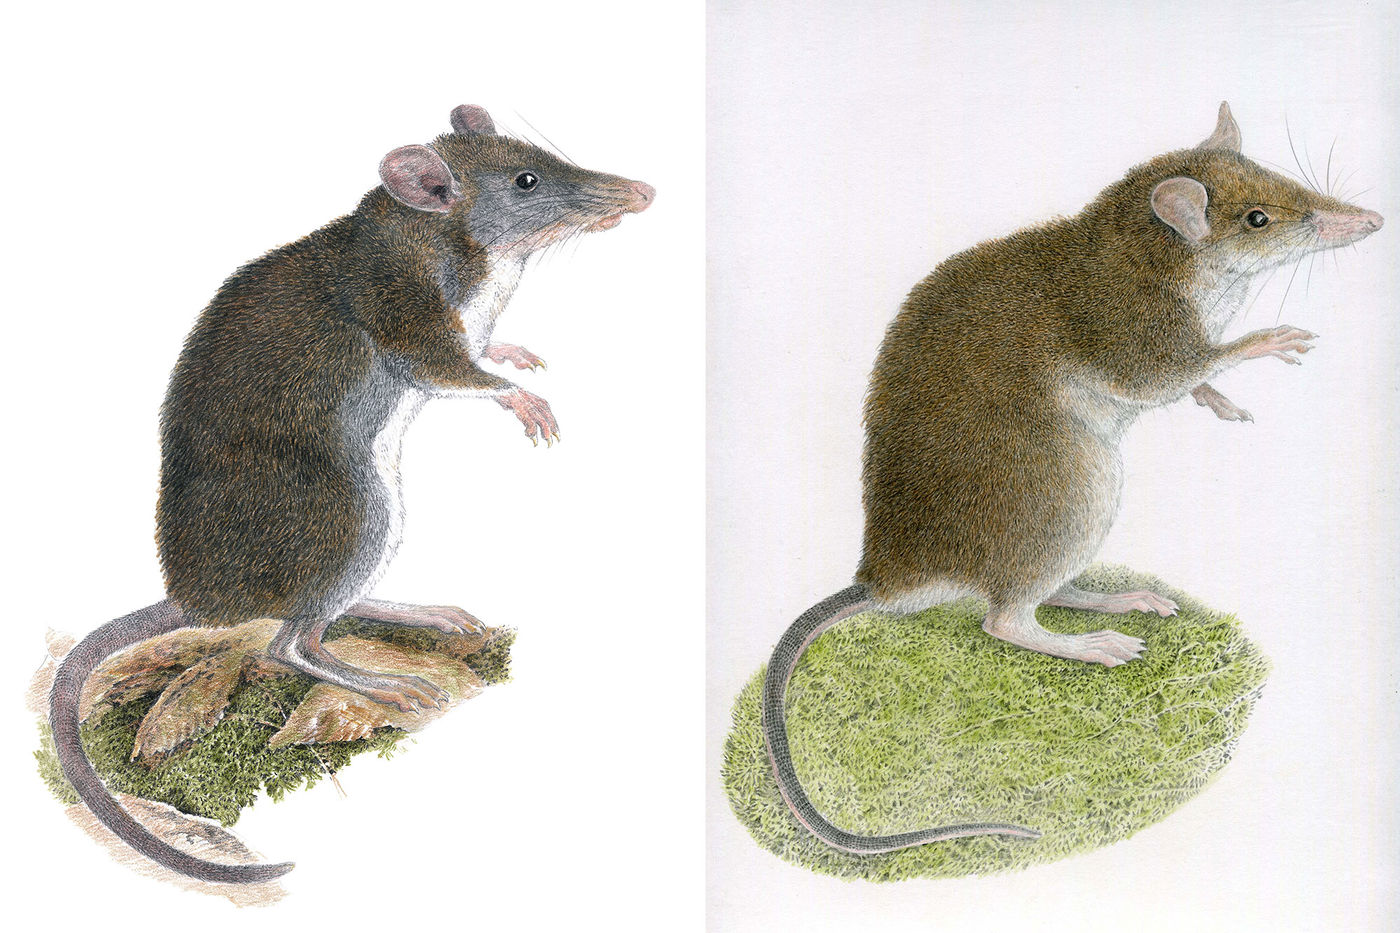 Side-by-side illustrations of two rats, in similar positions perched on their hind legs. The rat on the left has darker gray fur, and the one on the right is more light brown in color. They both have long, narrow snouts.